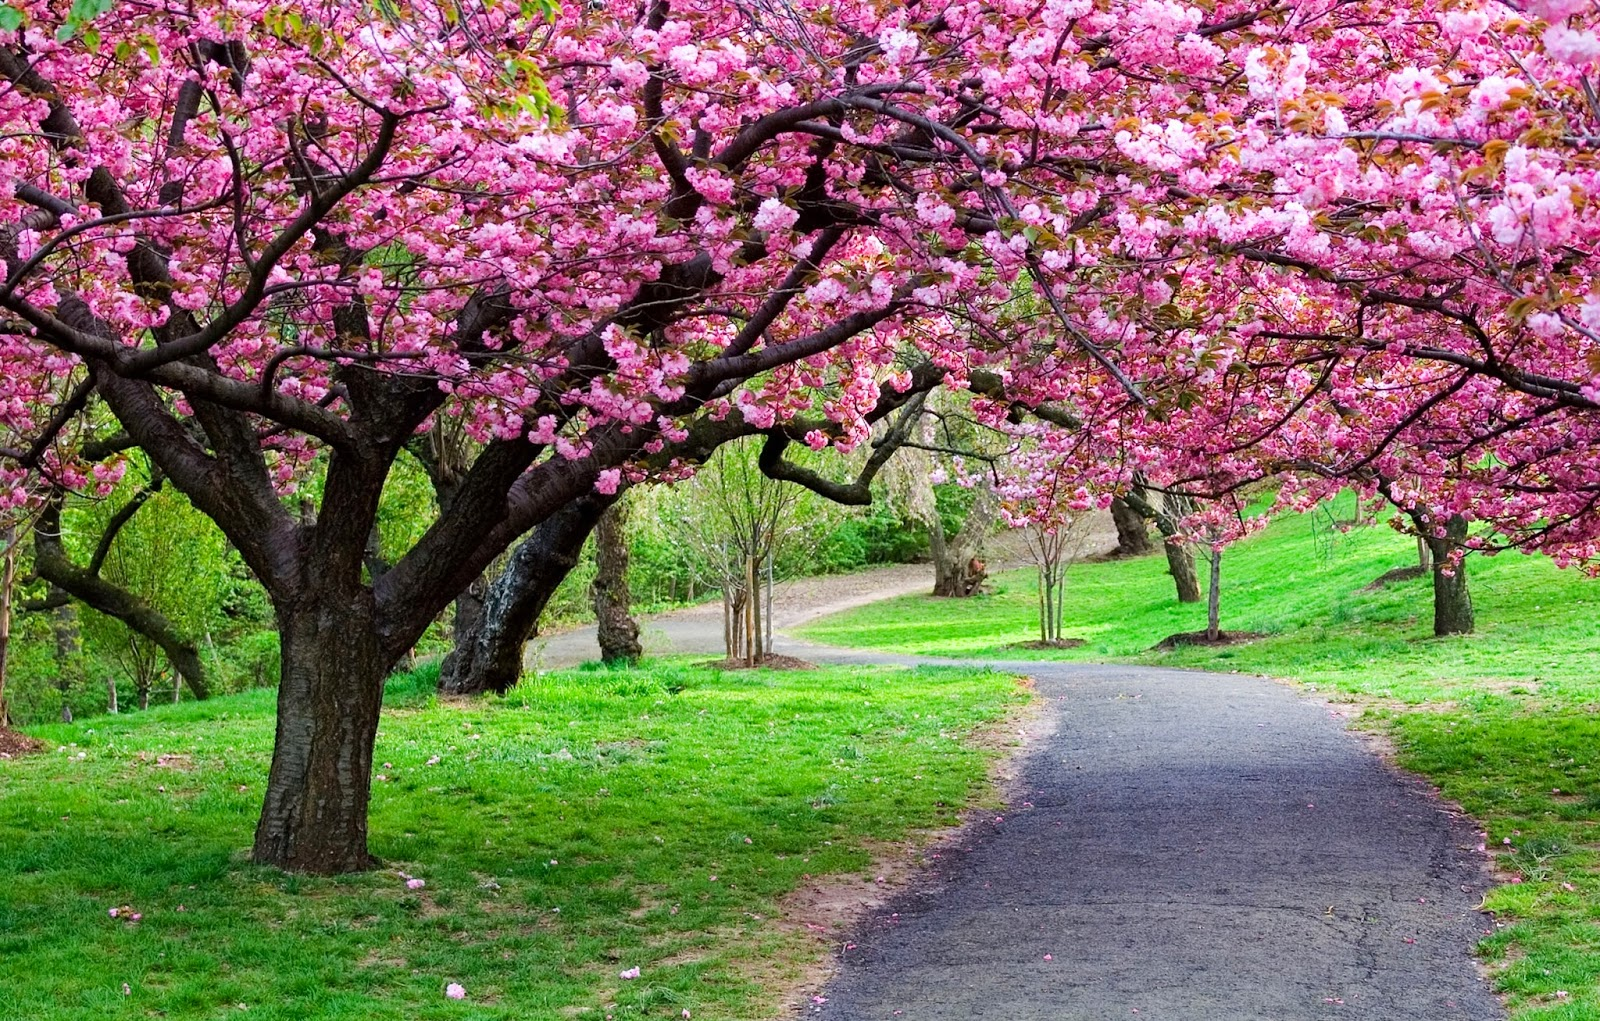 Never Enough Gratitude: THE MOST BEAUTIFUL SIGN OF SPRING